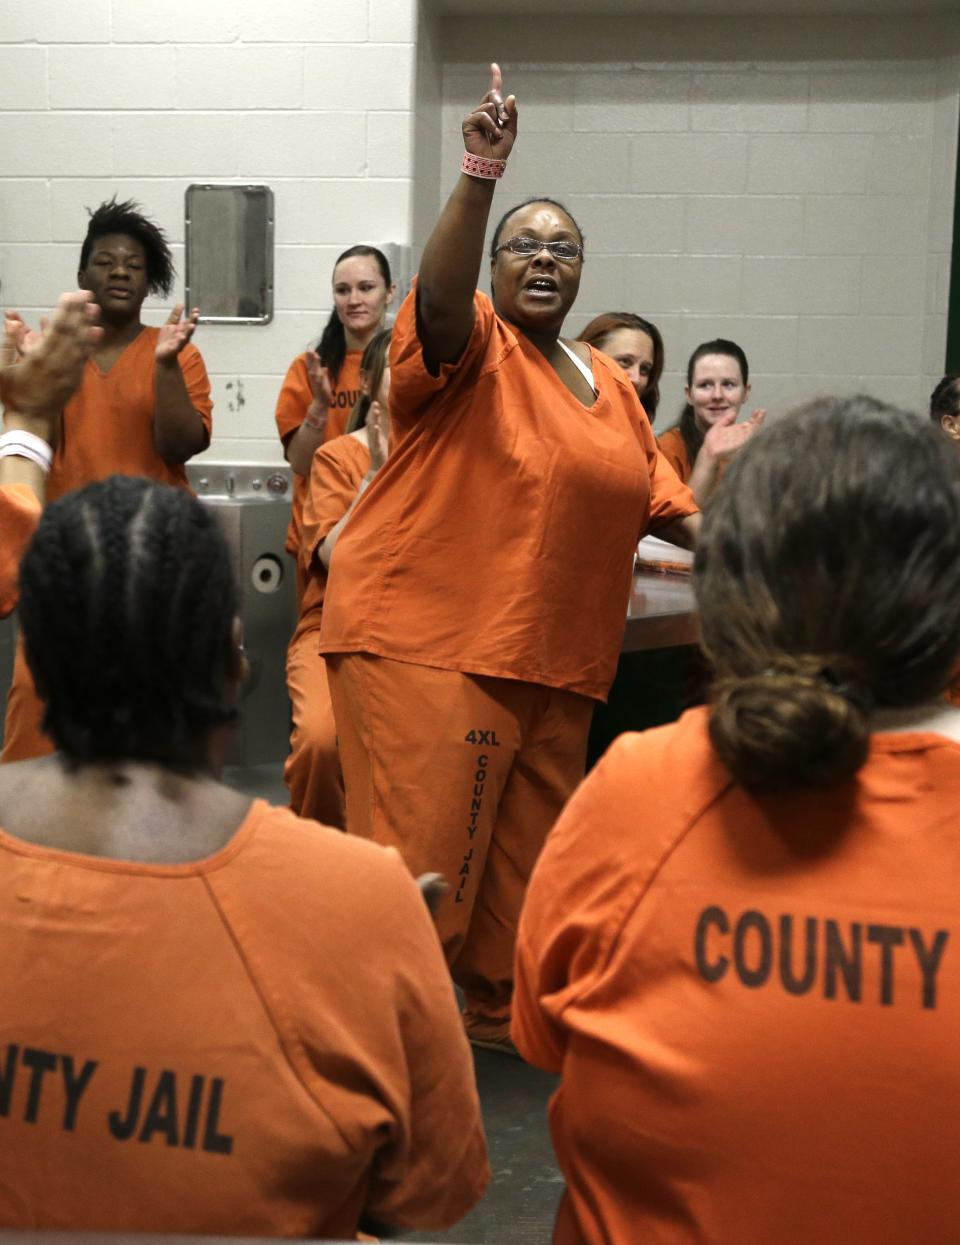 Lisa Riles, center, leads a cheer during a group meeting in their Harris County jail cell Tuesday, June 4, 2013, in Houston. The women participate in a prostitution rehabilitation program We've Been There Done That. (AP Photo/Pat Sullivan)